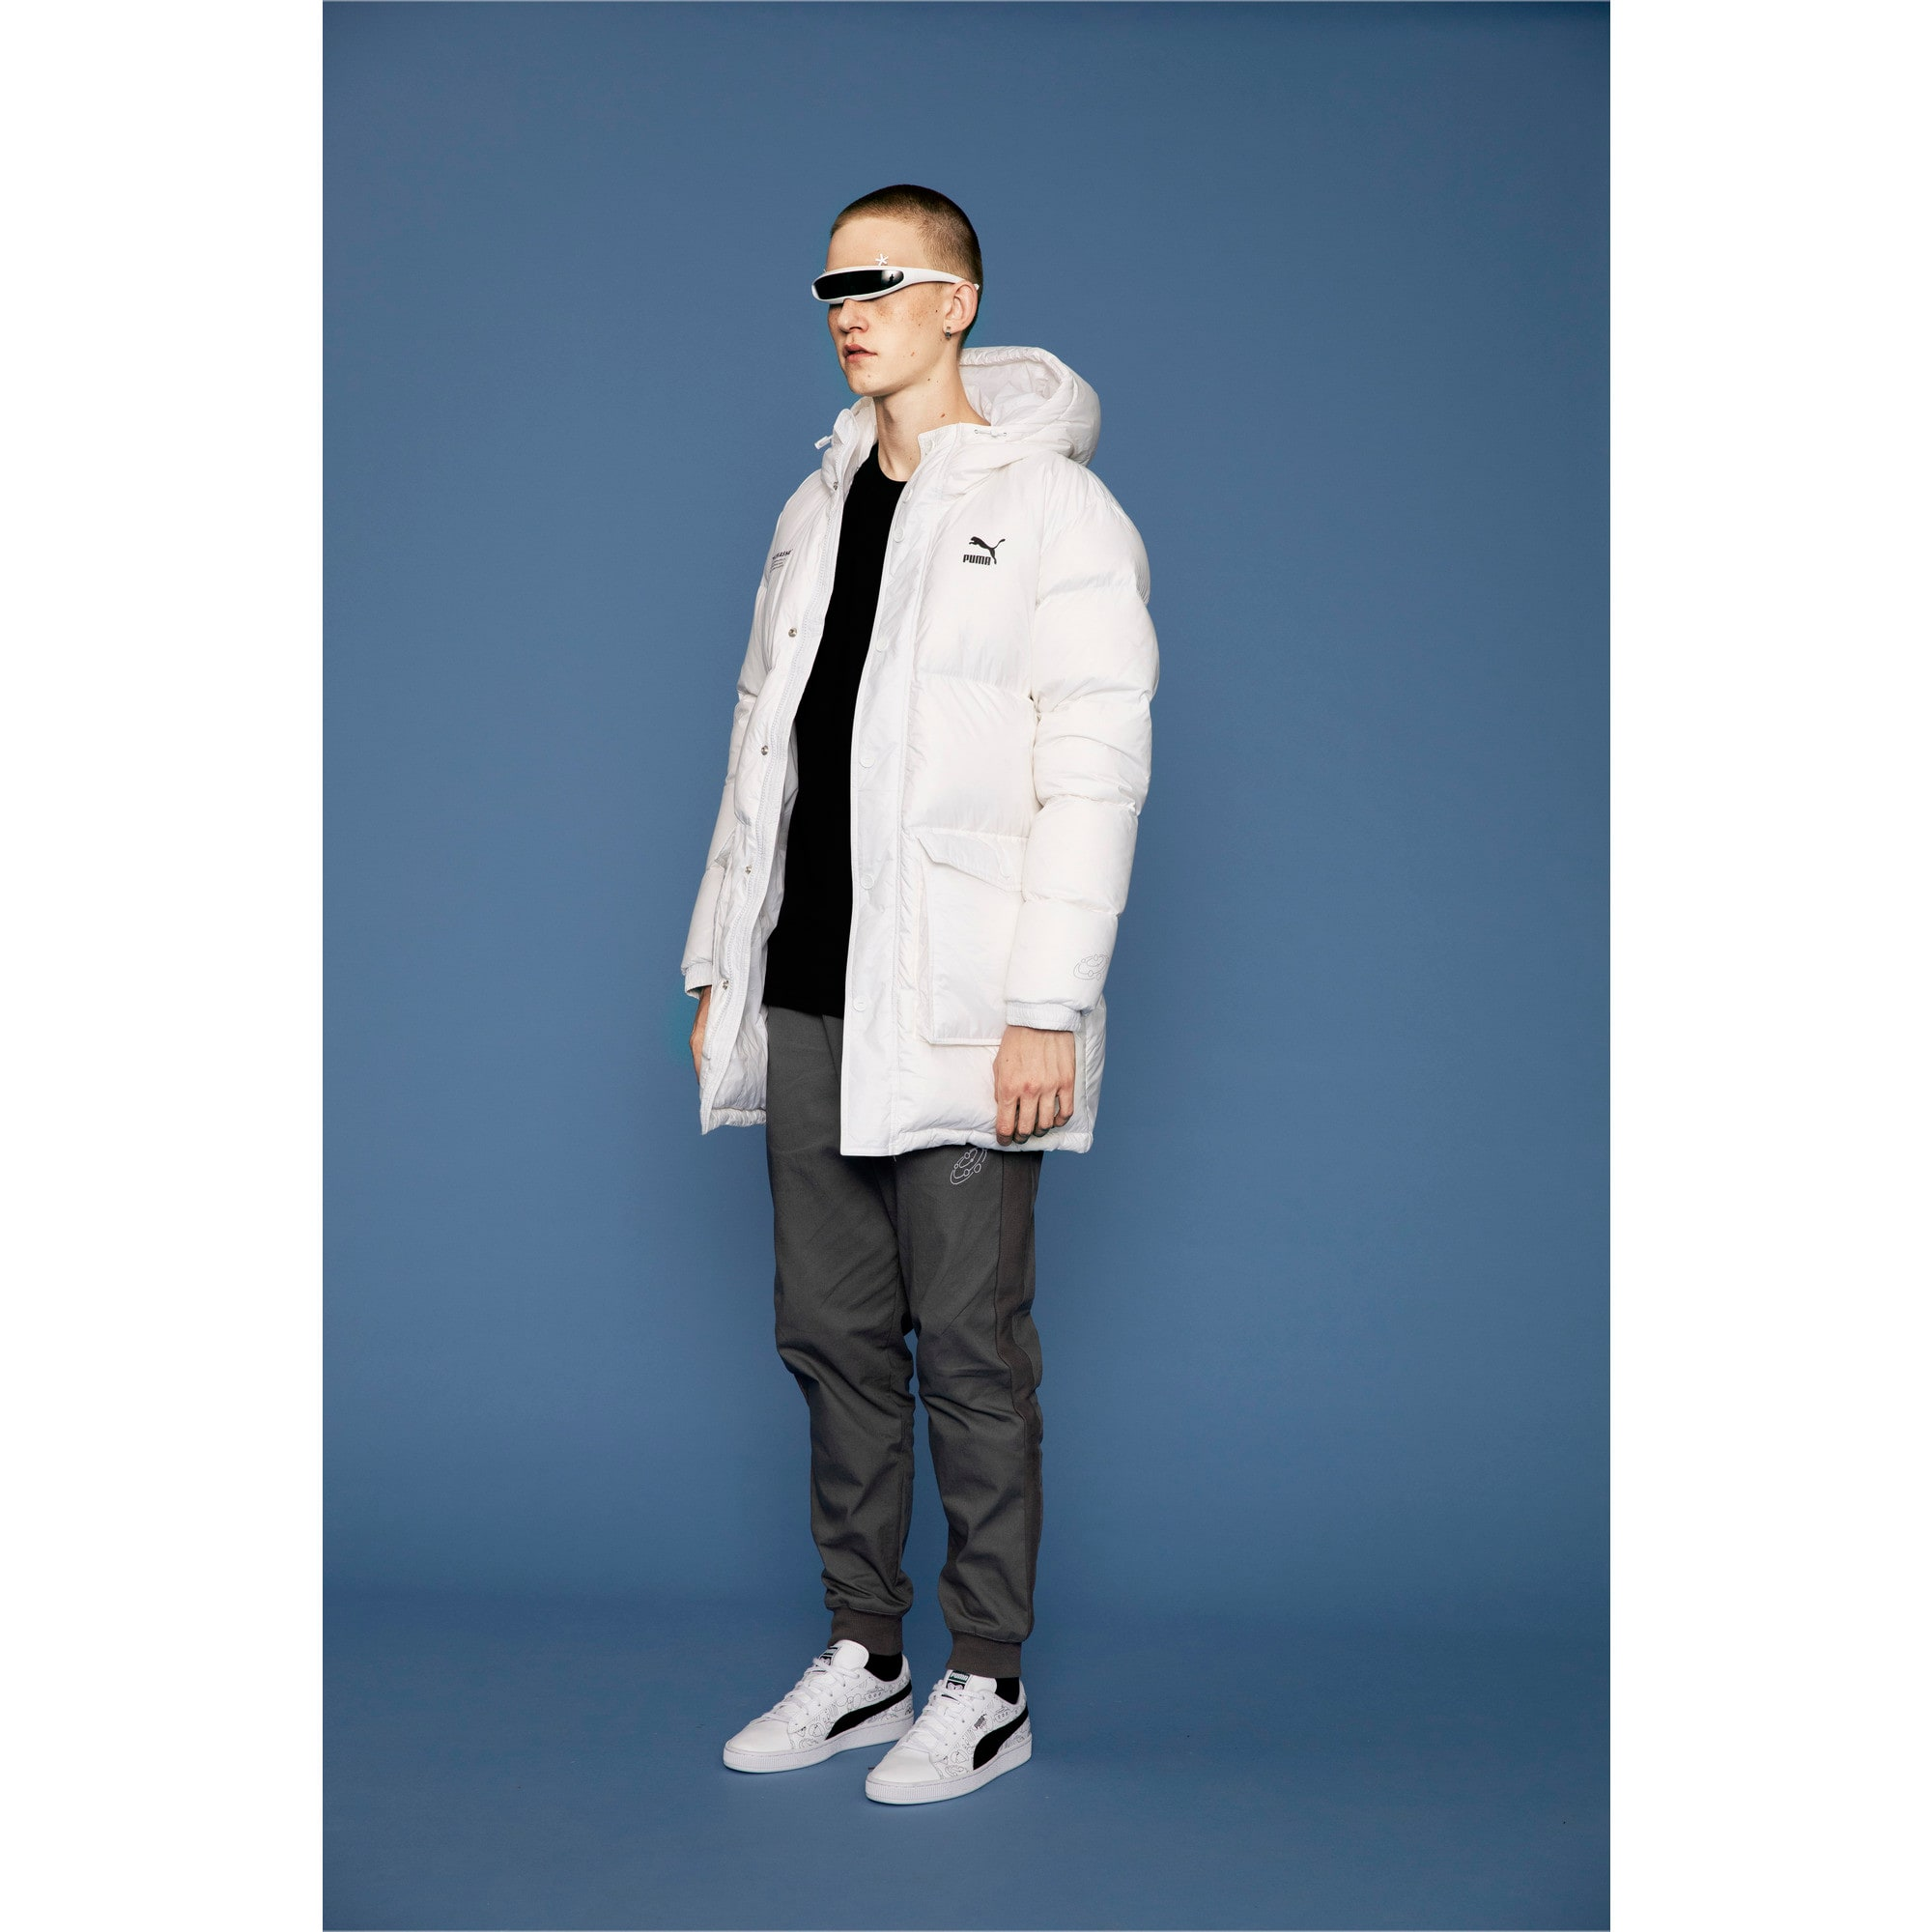 Thumbnail 6 of PUMA x TYAKASHA Down Parka, Puma White, medium